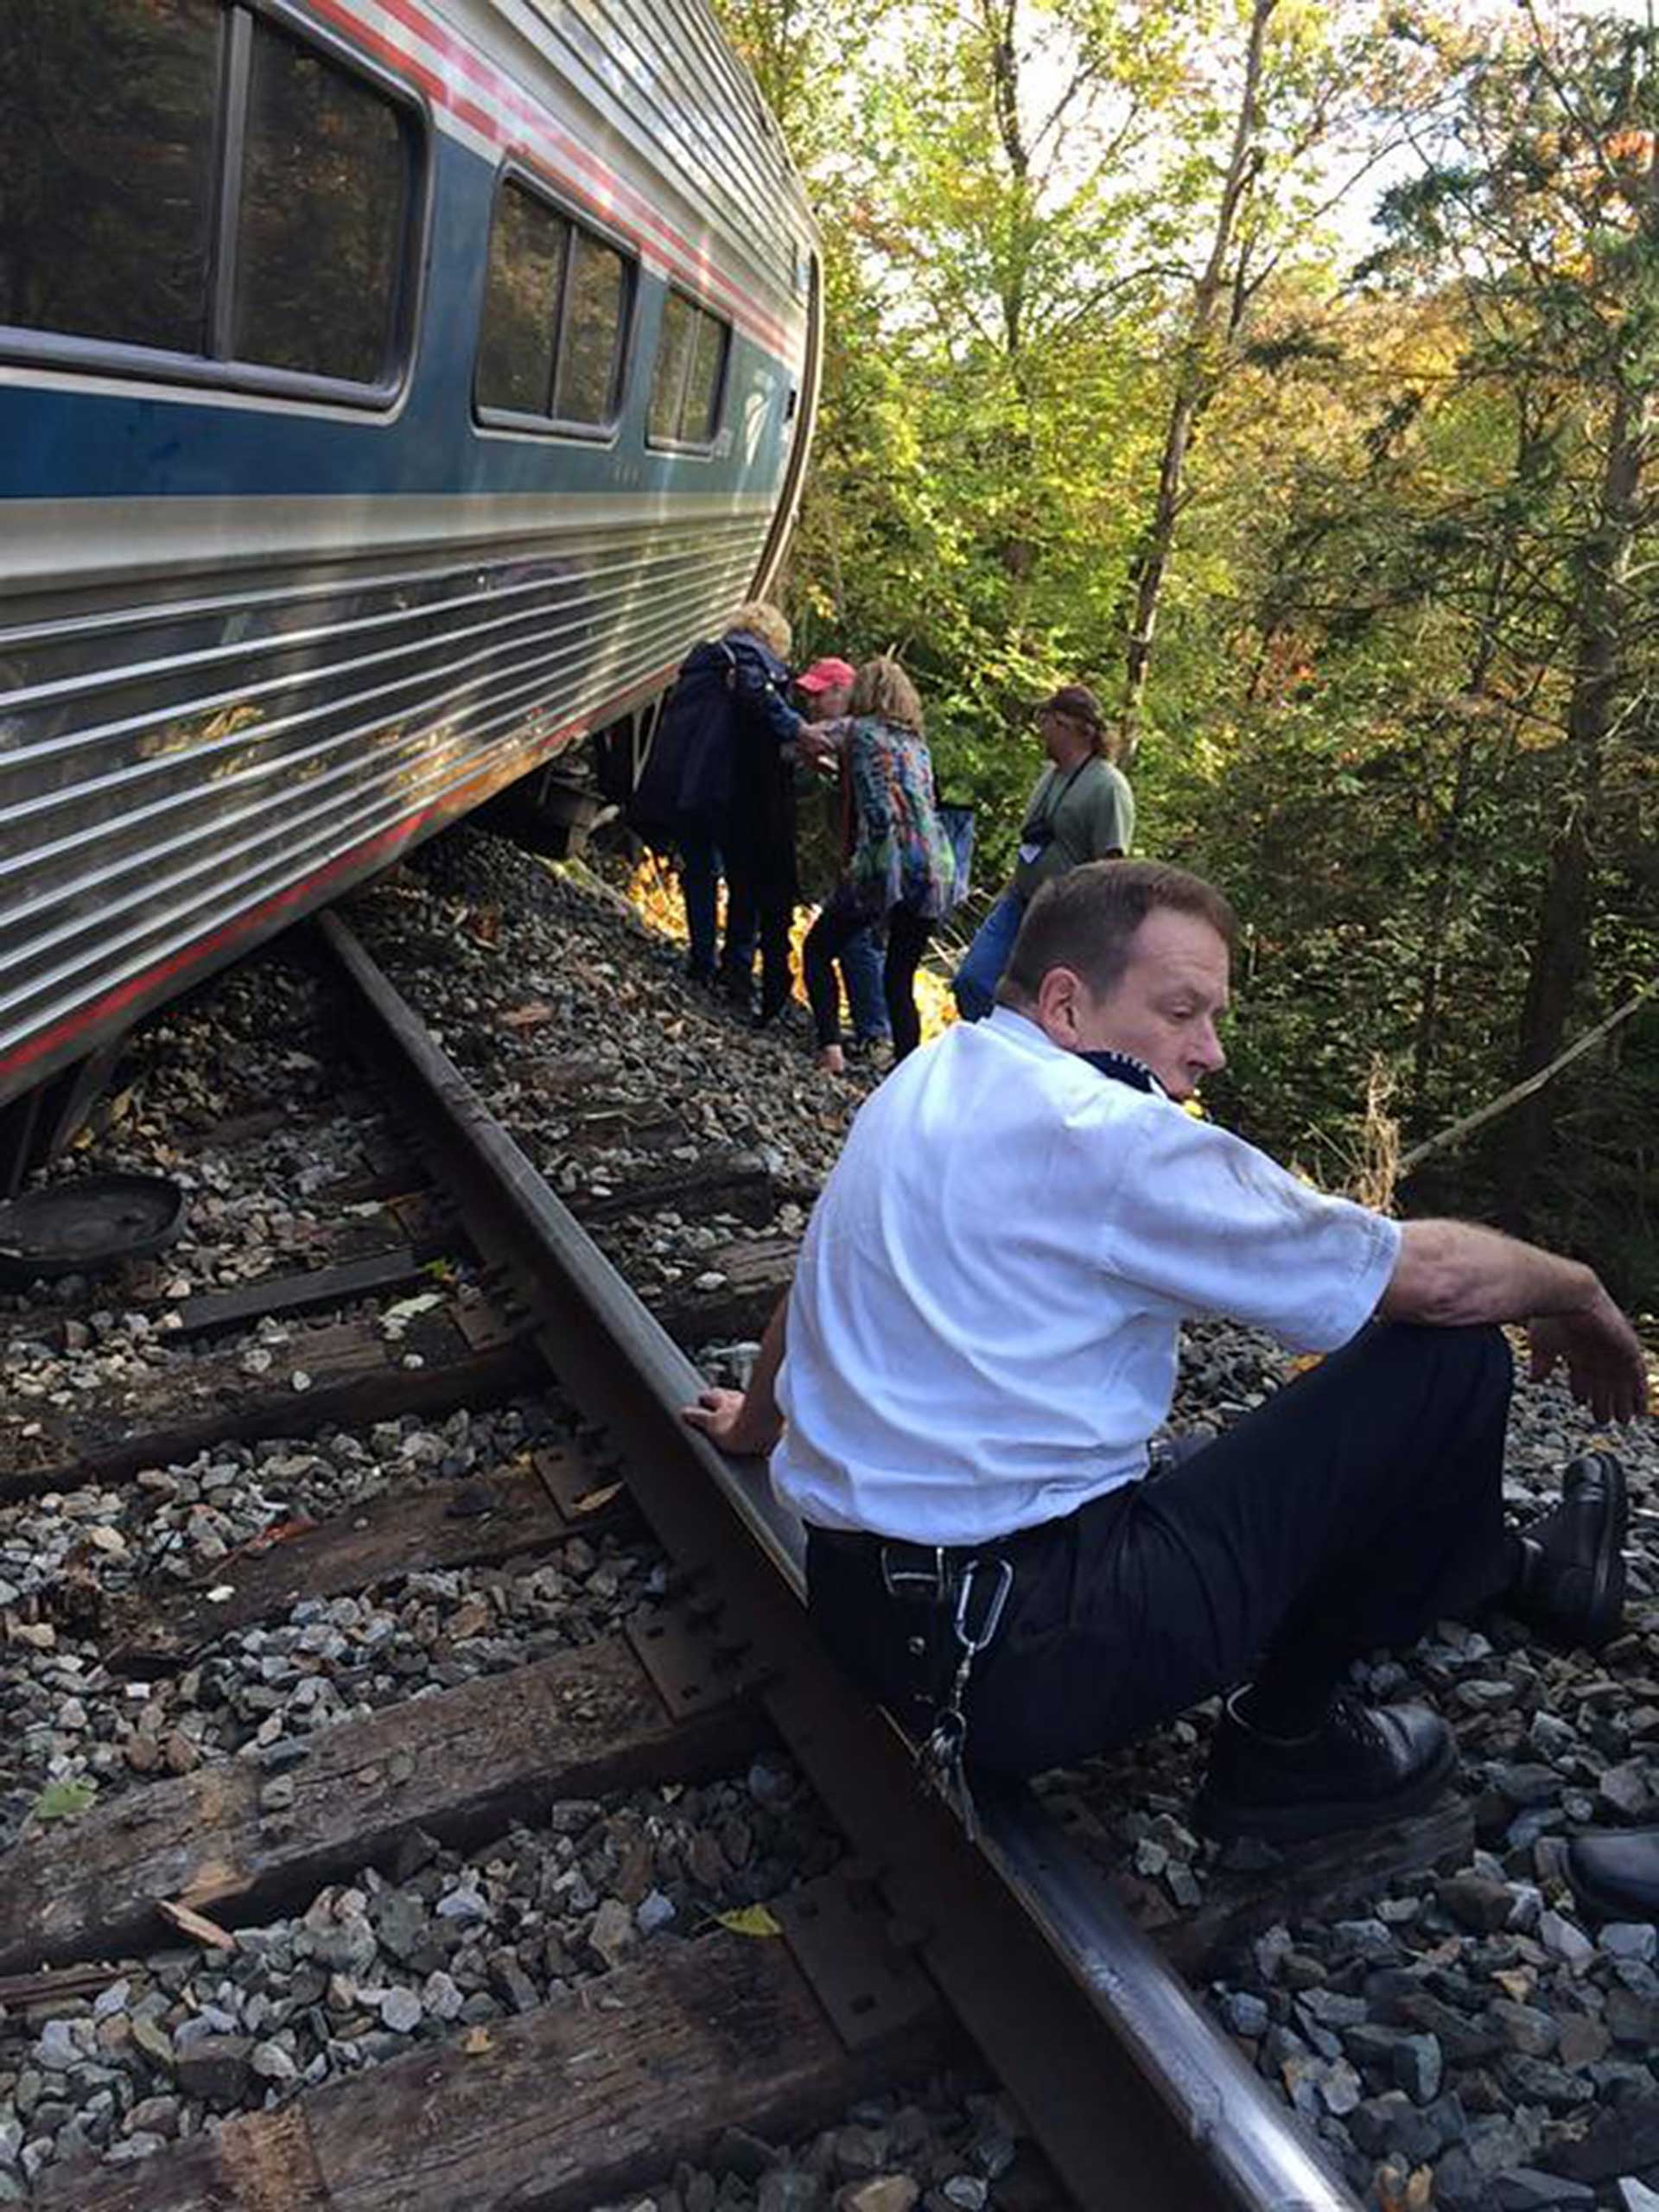 In this image released by BrianABELL1980 via Twitter and used with permission showing the scene after an Amtrak train derailed, reportedly after hitting a rockslide, near Northfield, Vermont, Oct. 5, 2015.